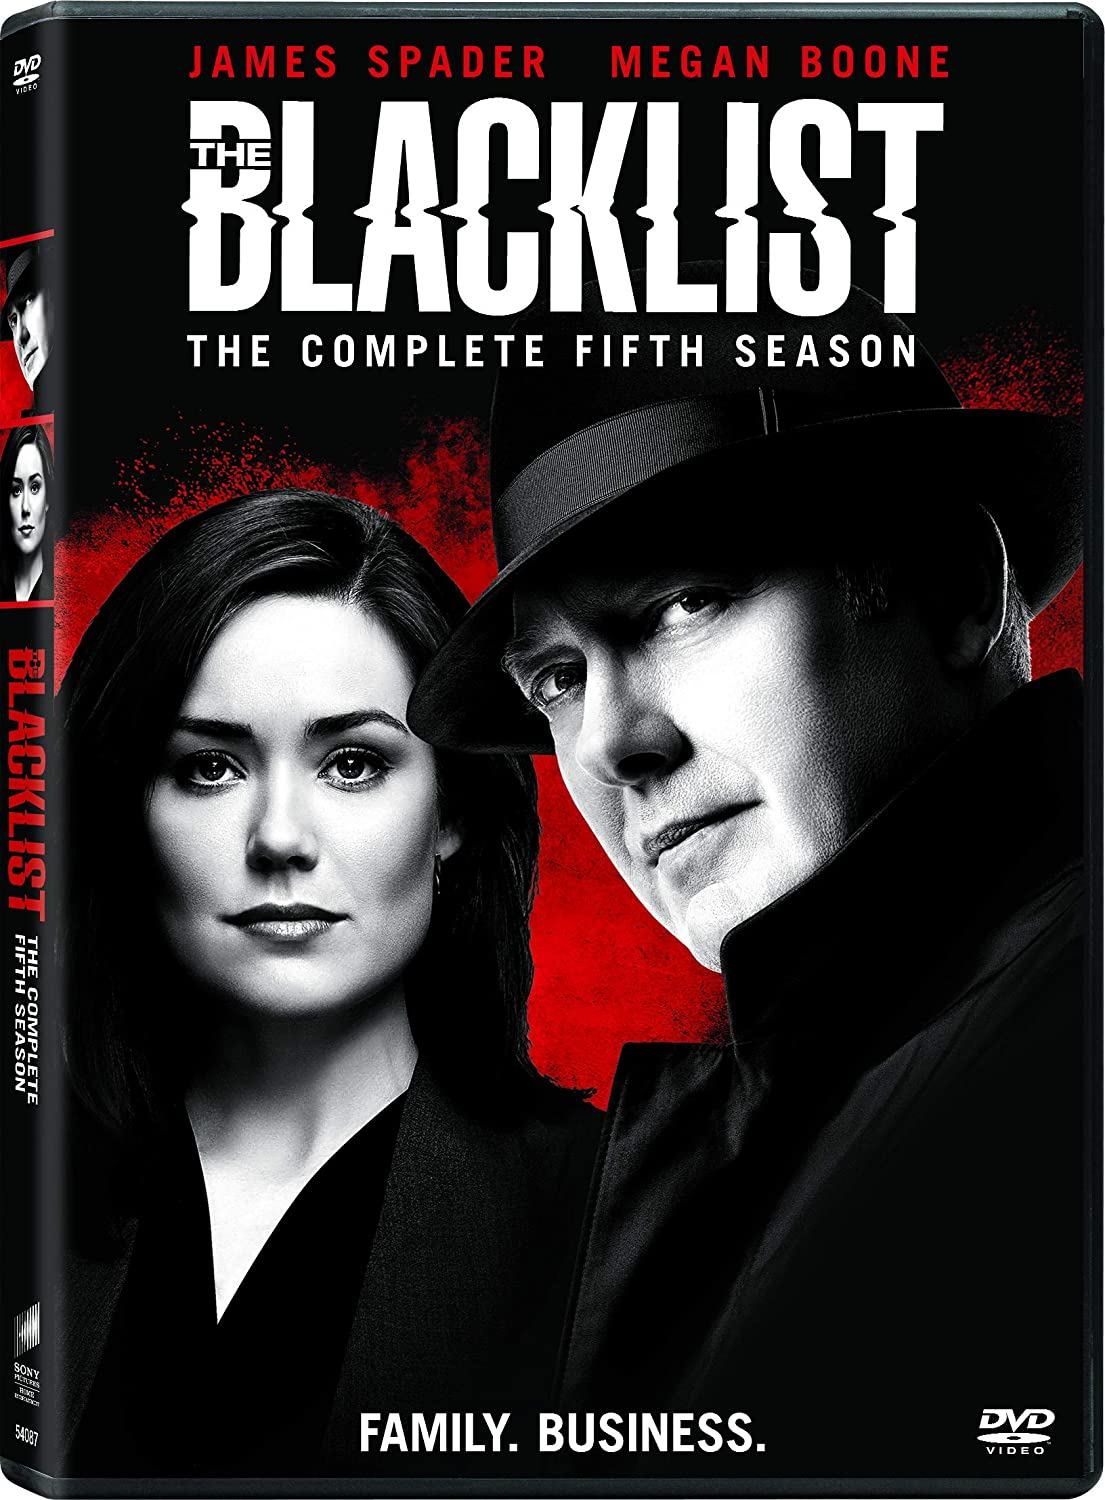 Amazon.com: The Blacklist - Season 05: James Spader, Megan Boone ...